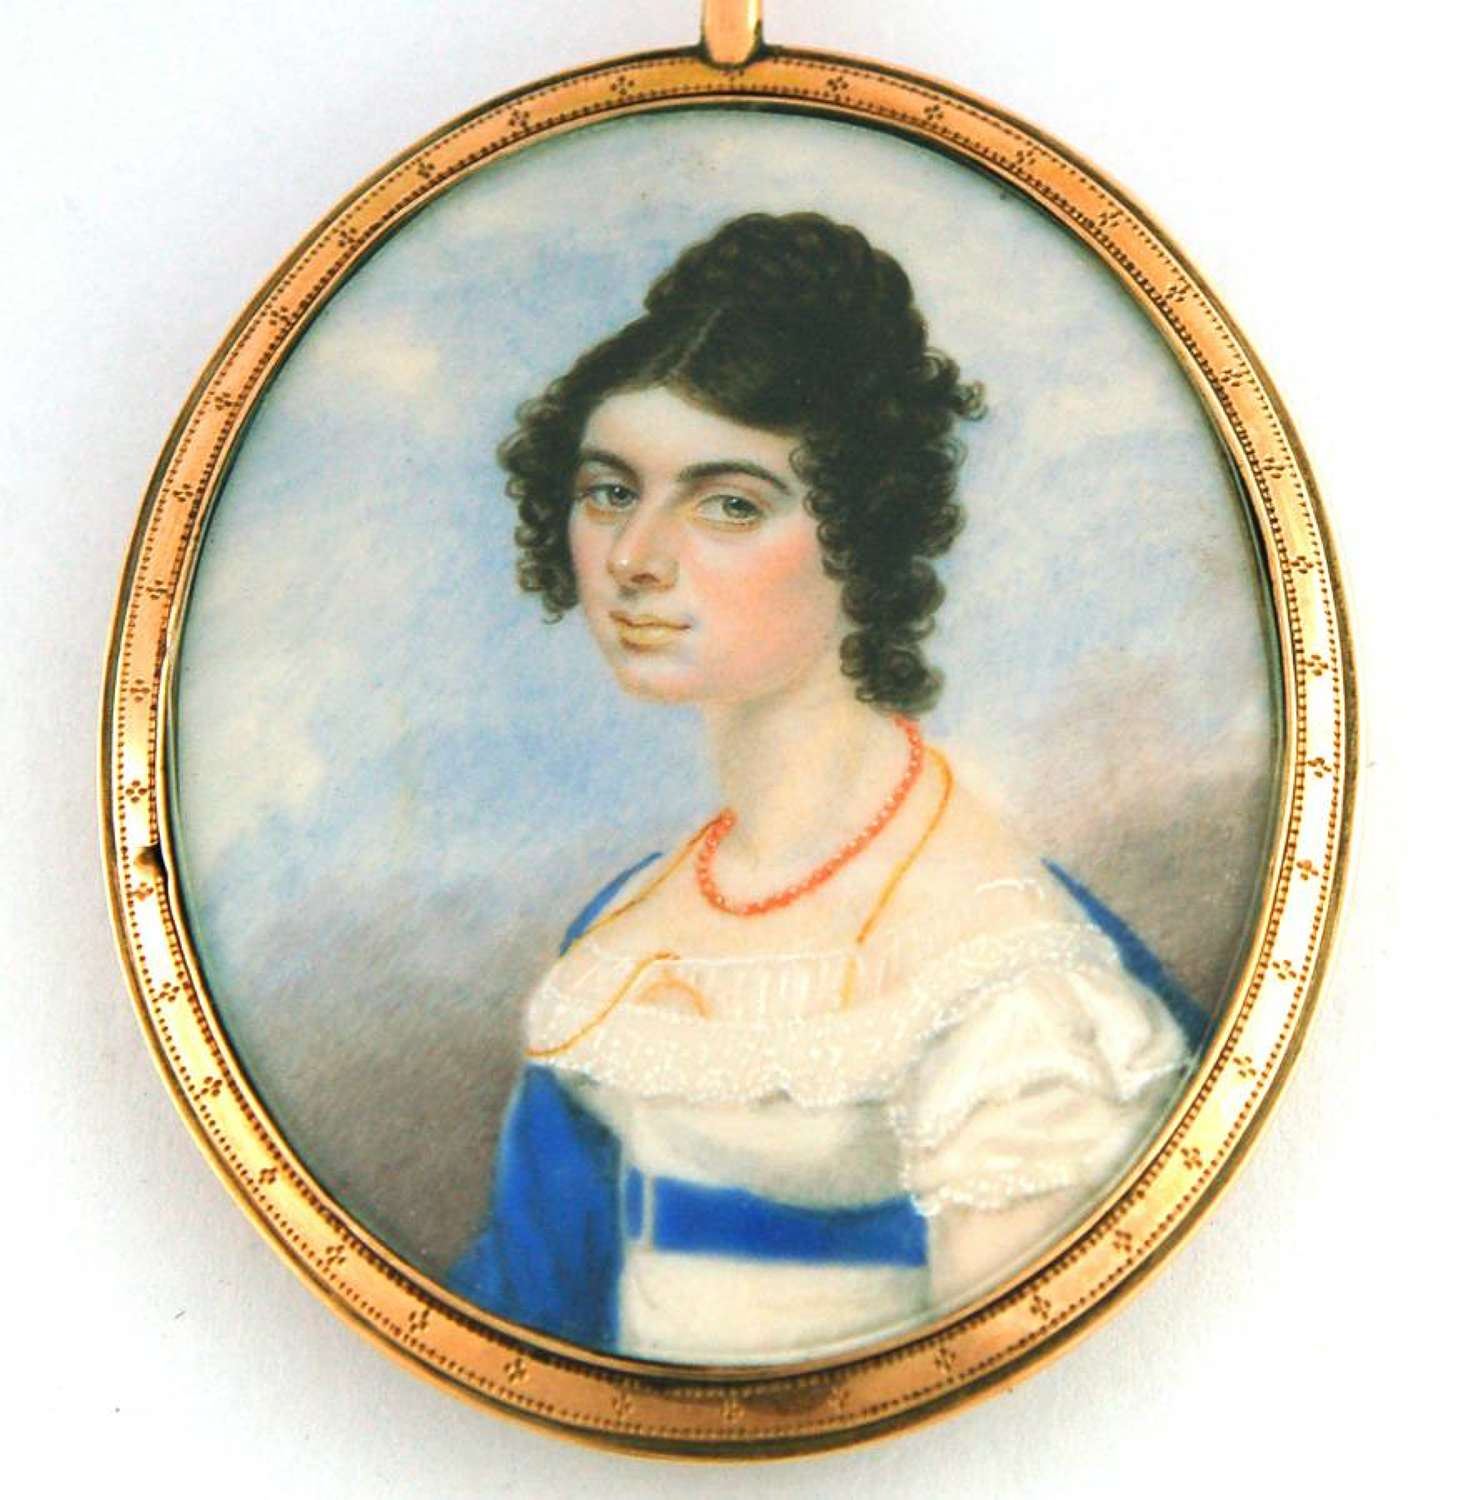 Attributed to Eliza Thicke